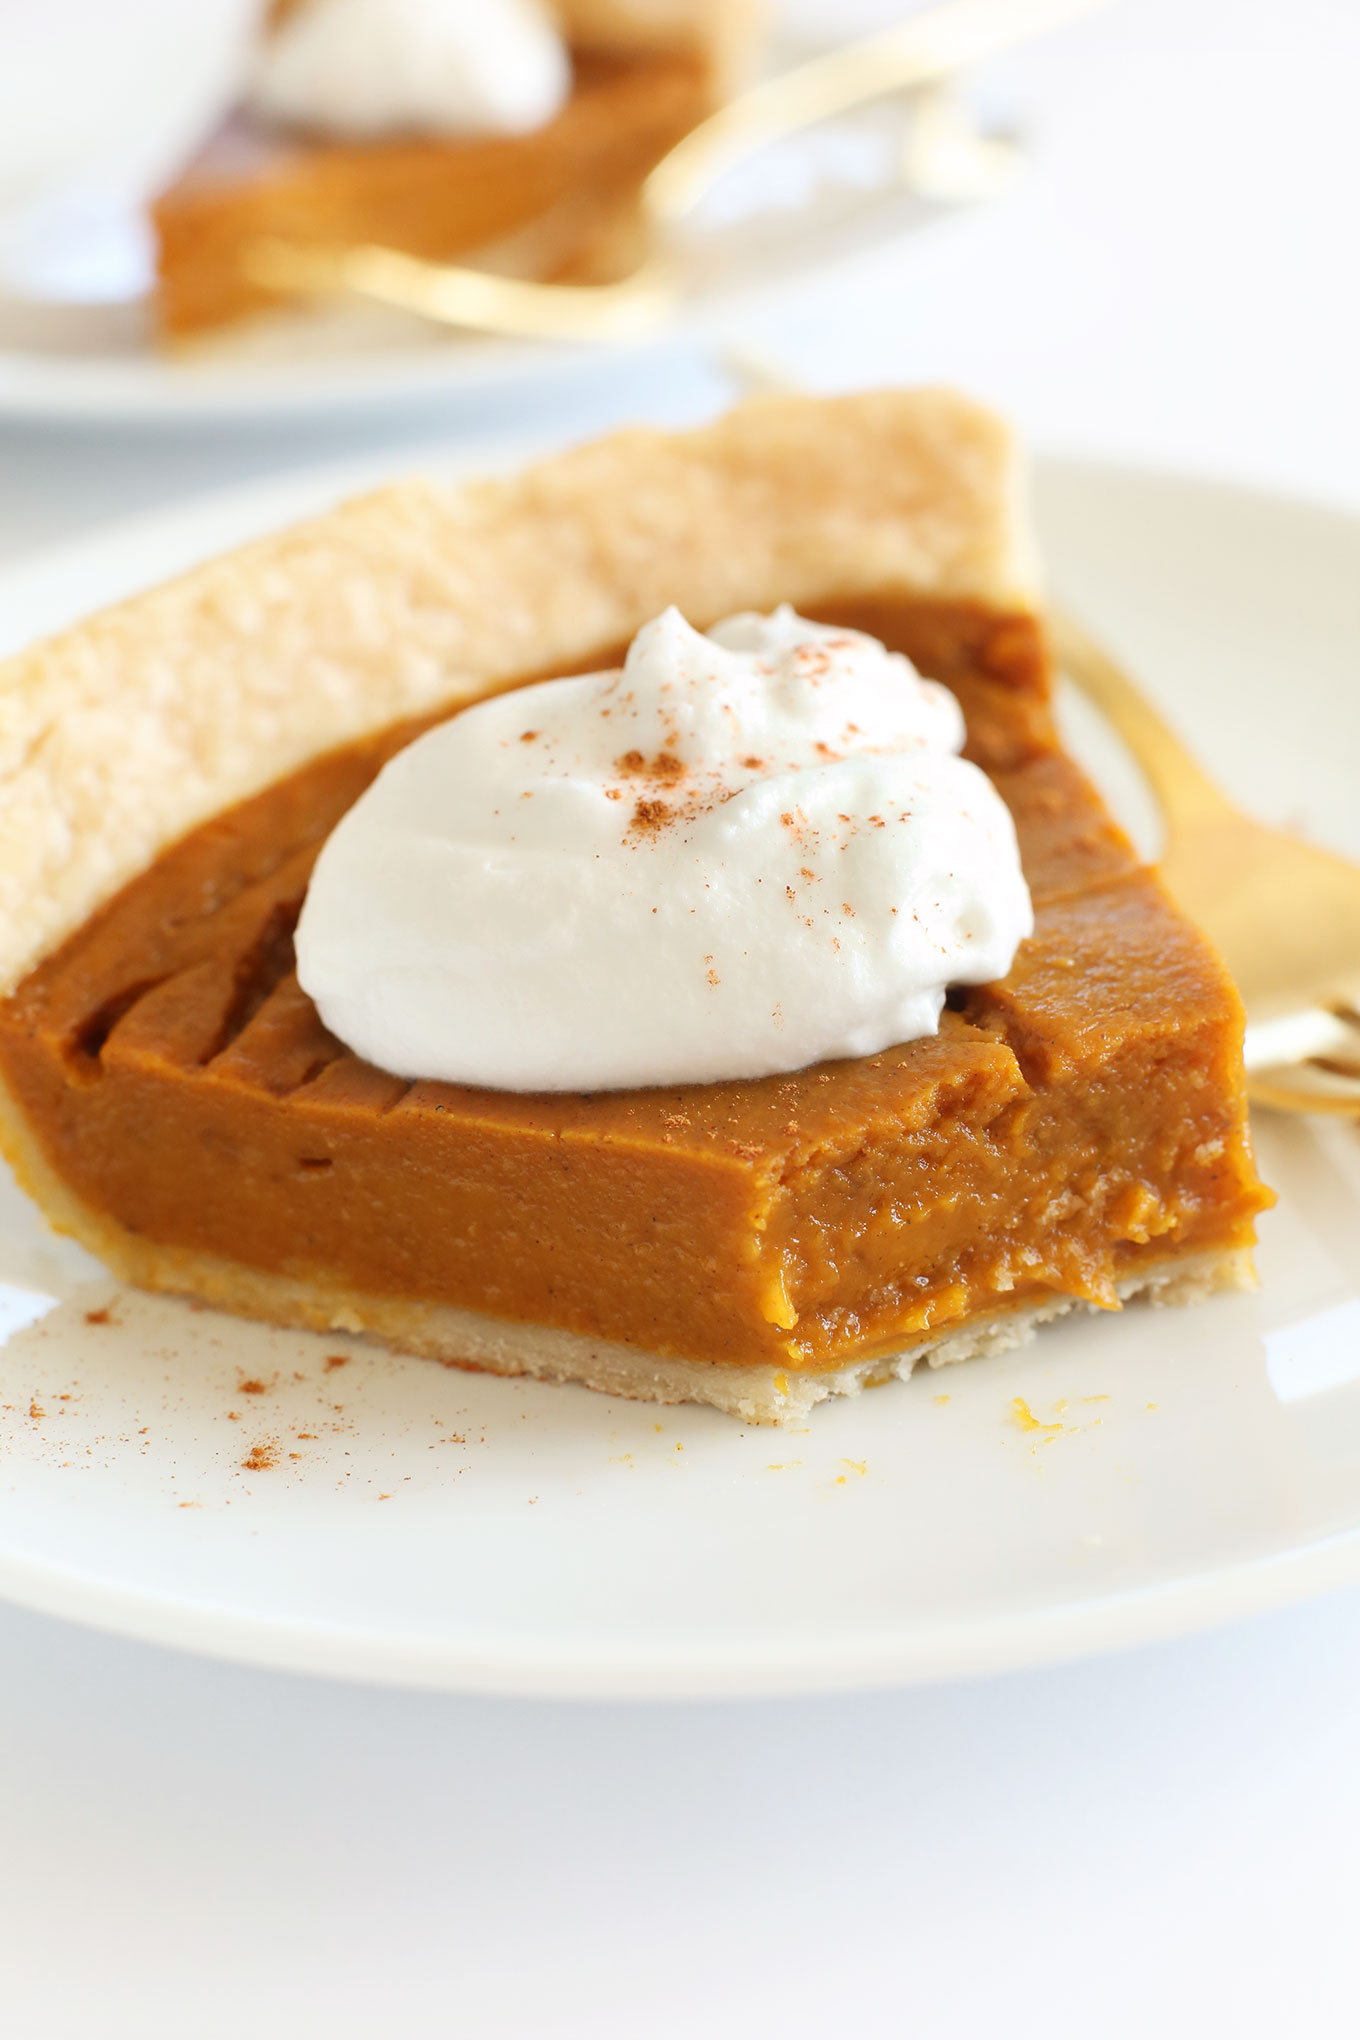 Partially eaten slice of delicious vegan gluten-free pumpkin pie